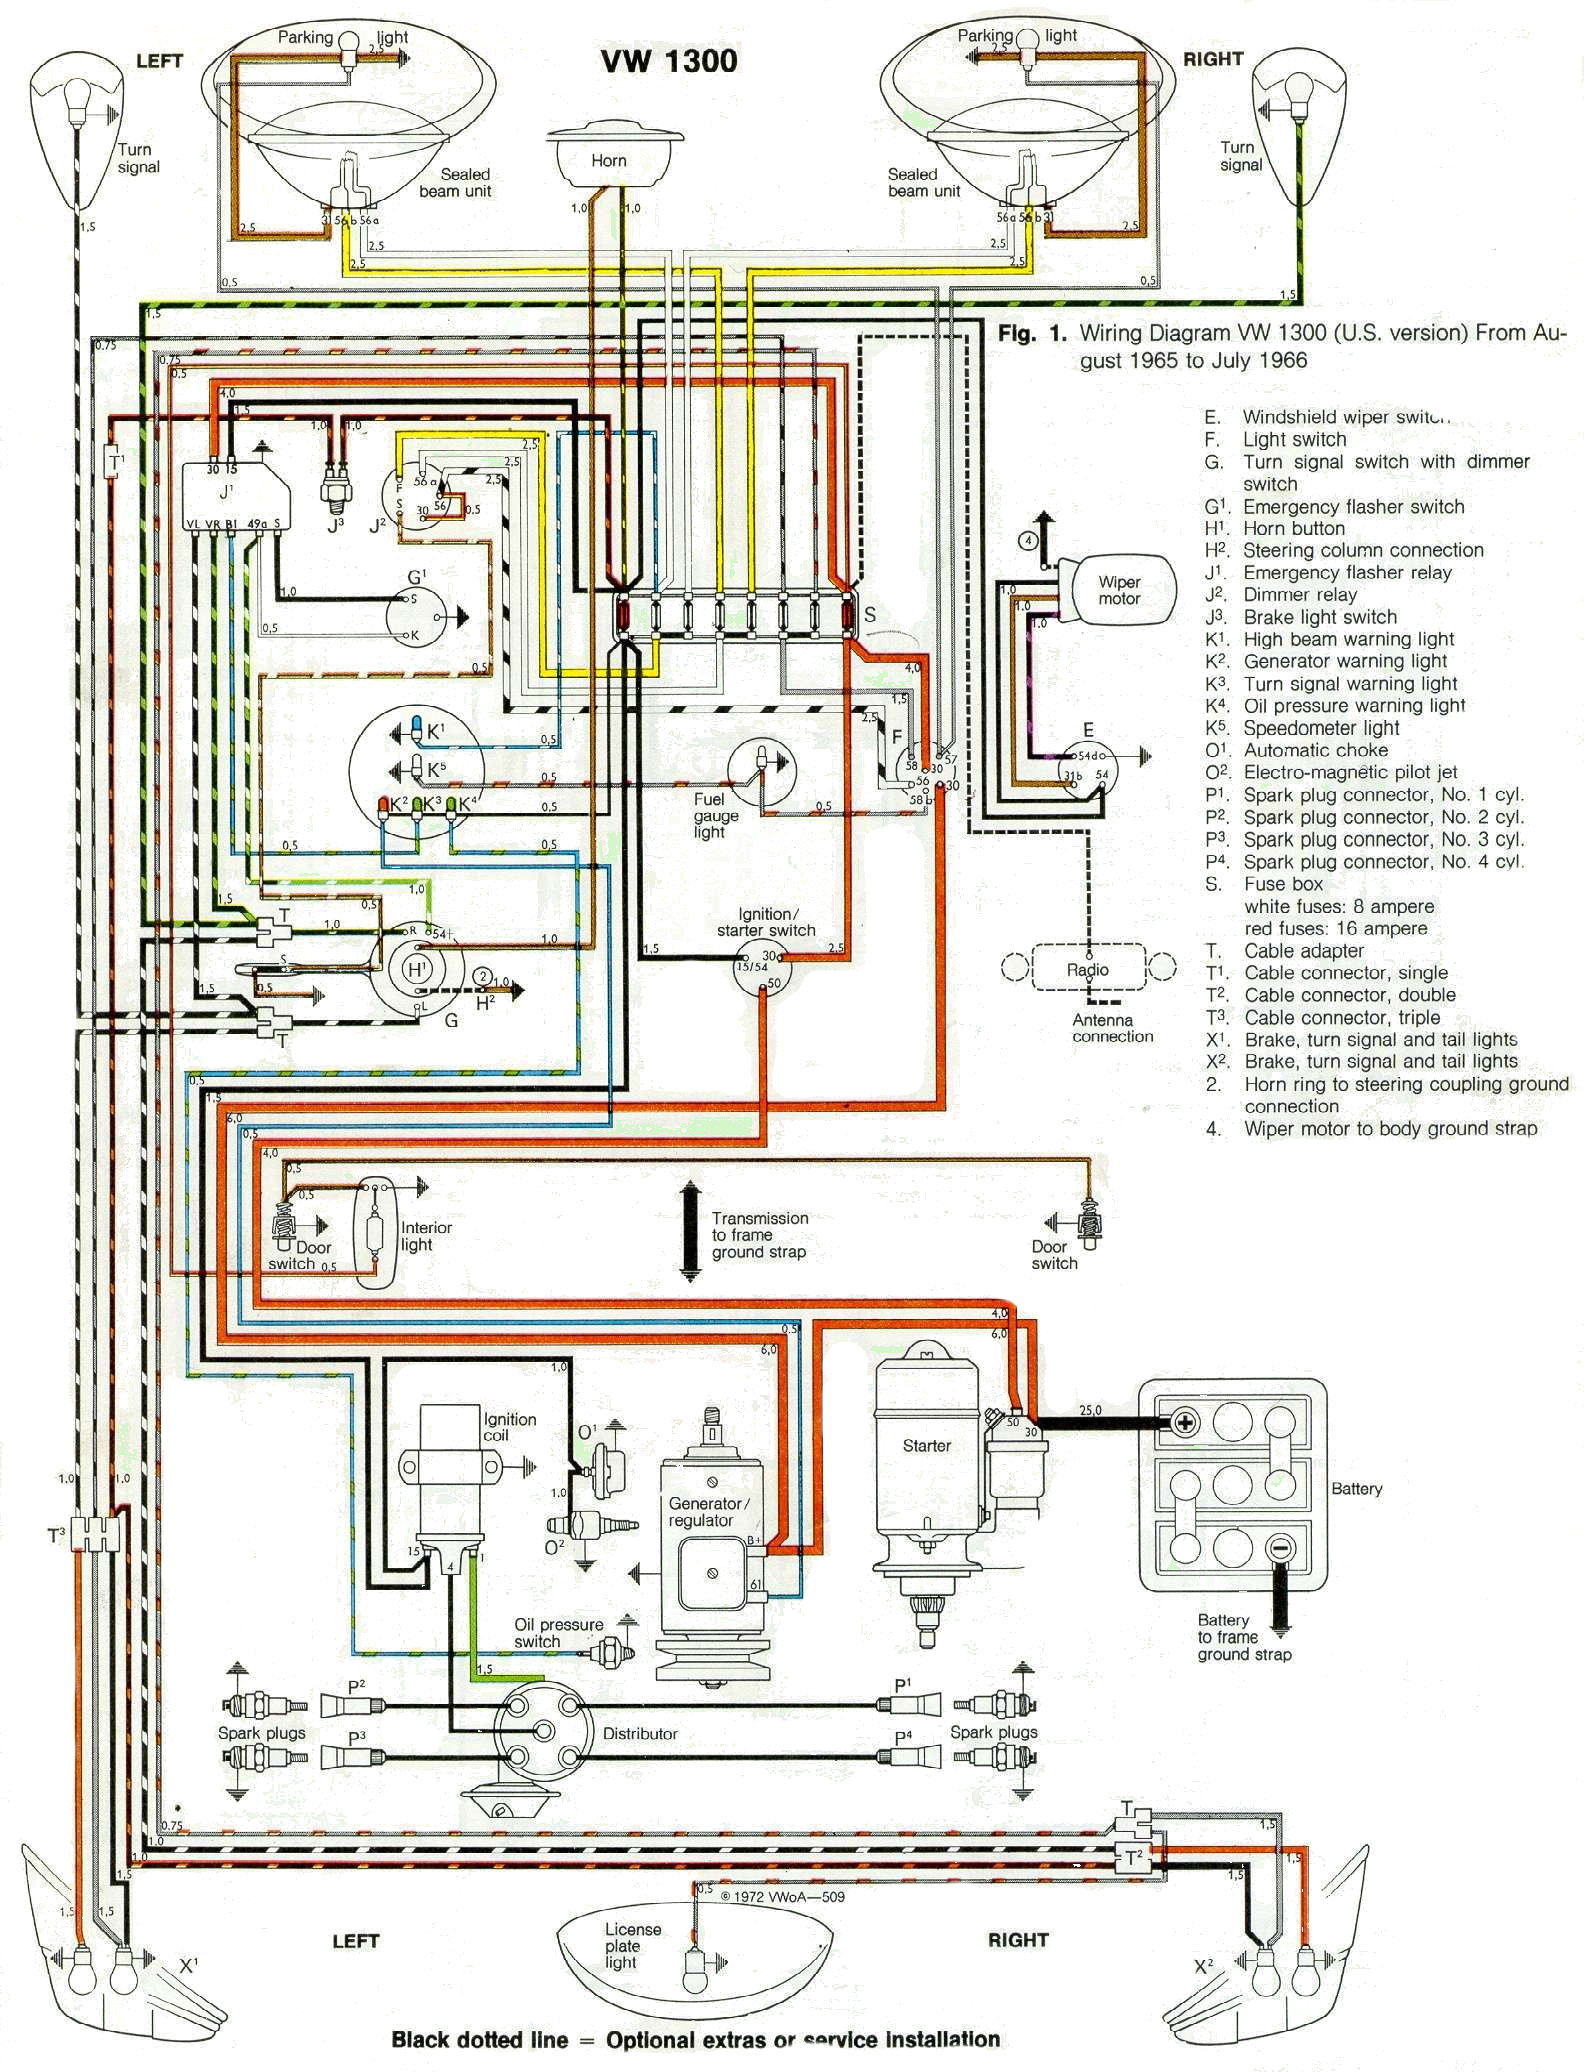 1966 Wiring Diagram on volkswagen fuse diagram, volkswagen relay diagram, volkswagen chassis, volkswagen engine diagram, volkswagen clutch diagram, volkswagen fuse chart, volkswagen air conditioning, volkswagen charging system diagram, volkswagen transaxle diagram, volkswagen ignition diagram, volkswagen fuel diagram, volkswagen brakes diagram, volkswagen firing order, volkswagen torque specs, volkswagen oil diagram, volkswagen key diagram, volkswagen vacuum diagram, volkswagen electrical system, volkswagen r400,